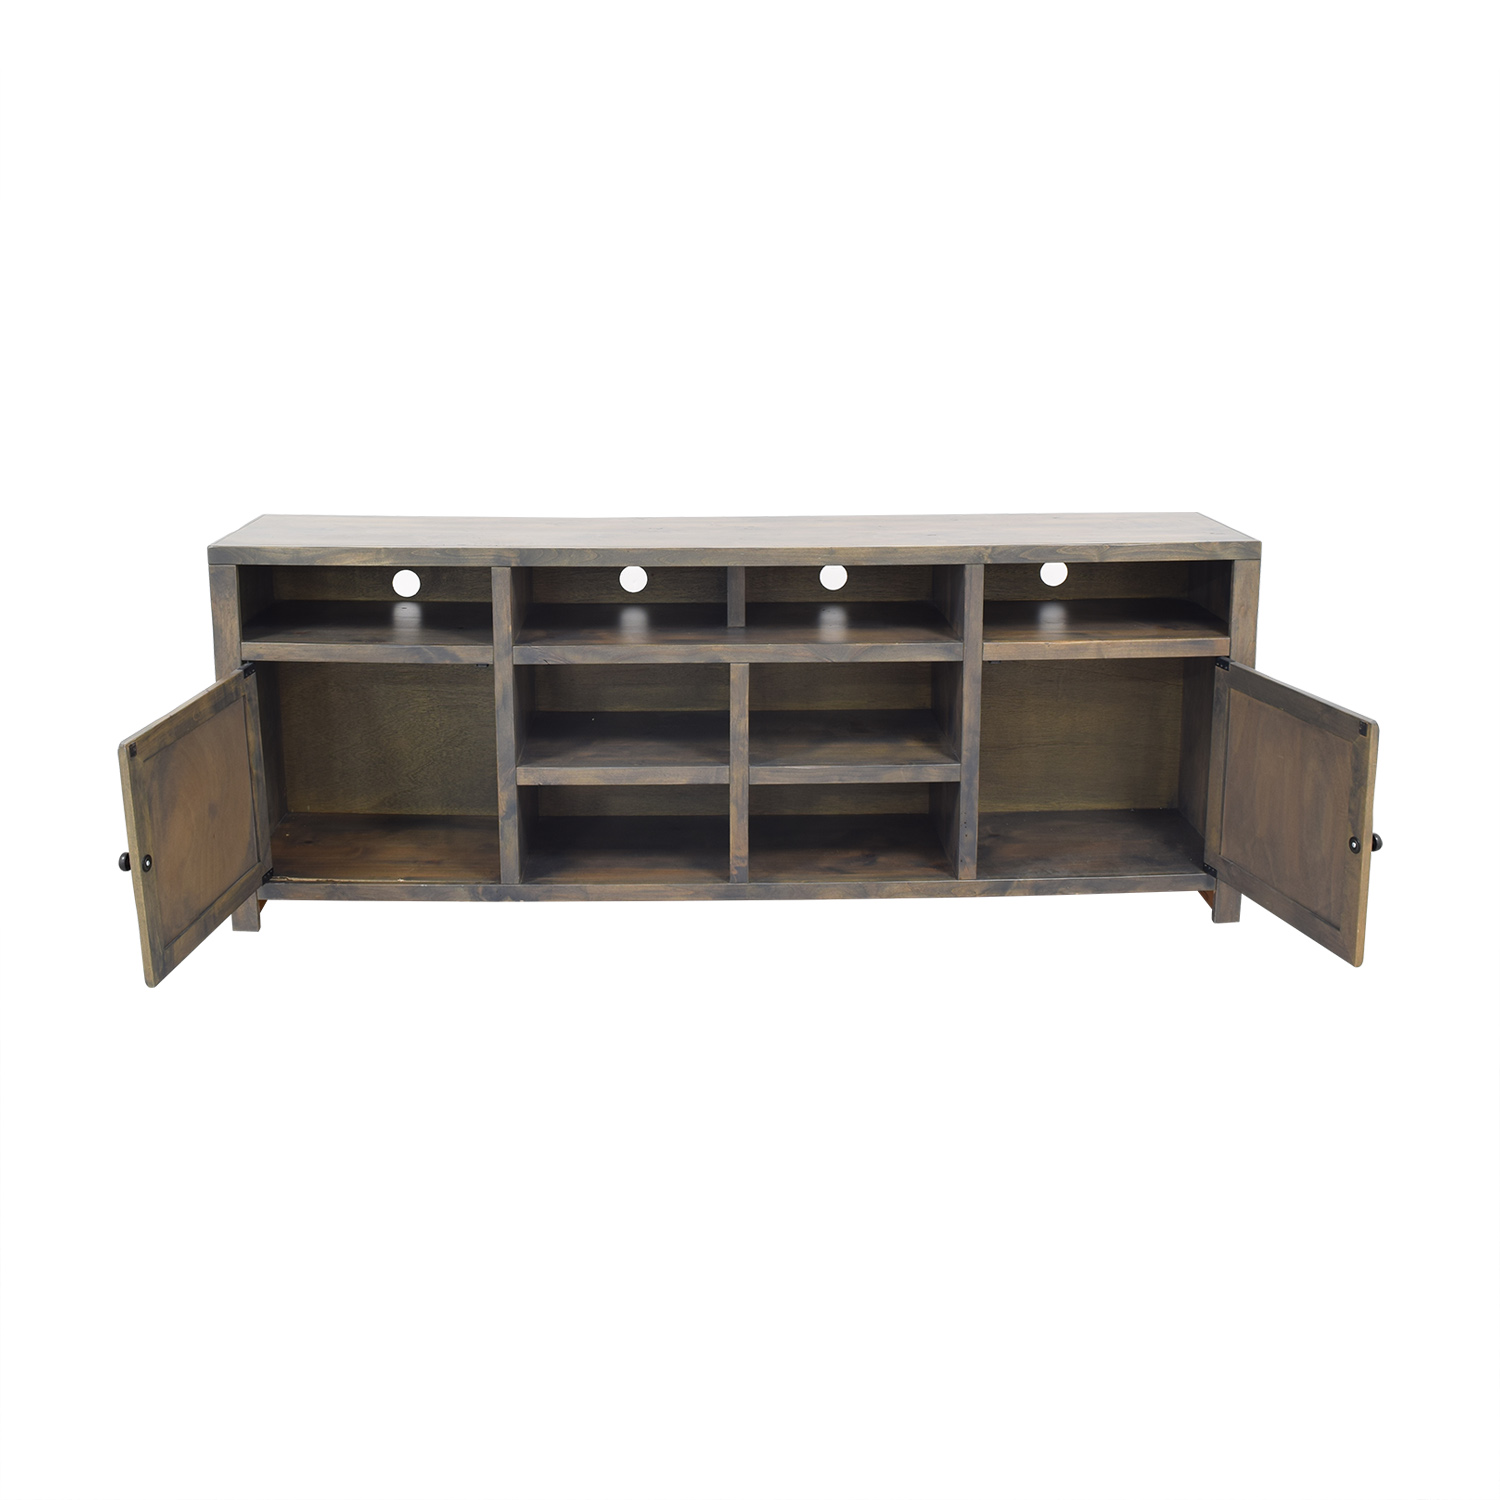 shop Legends Furniture Legends Furniture Joshua Creek Super Console online